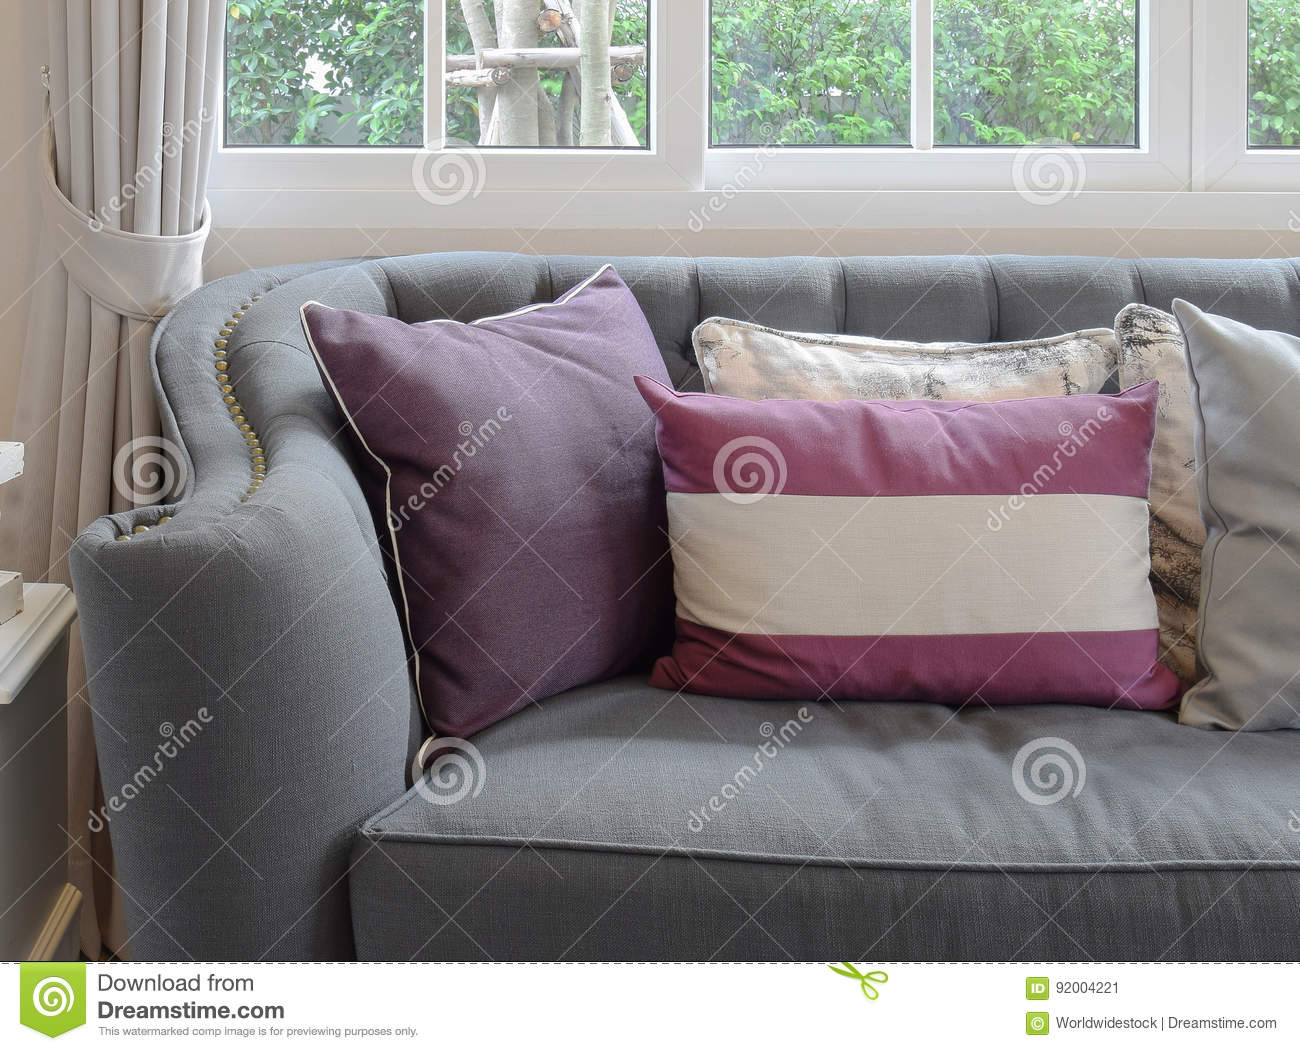 luxury living room design with classic sofa and decorative purple pillow stock image image of living armchair 92004221